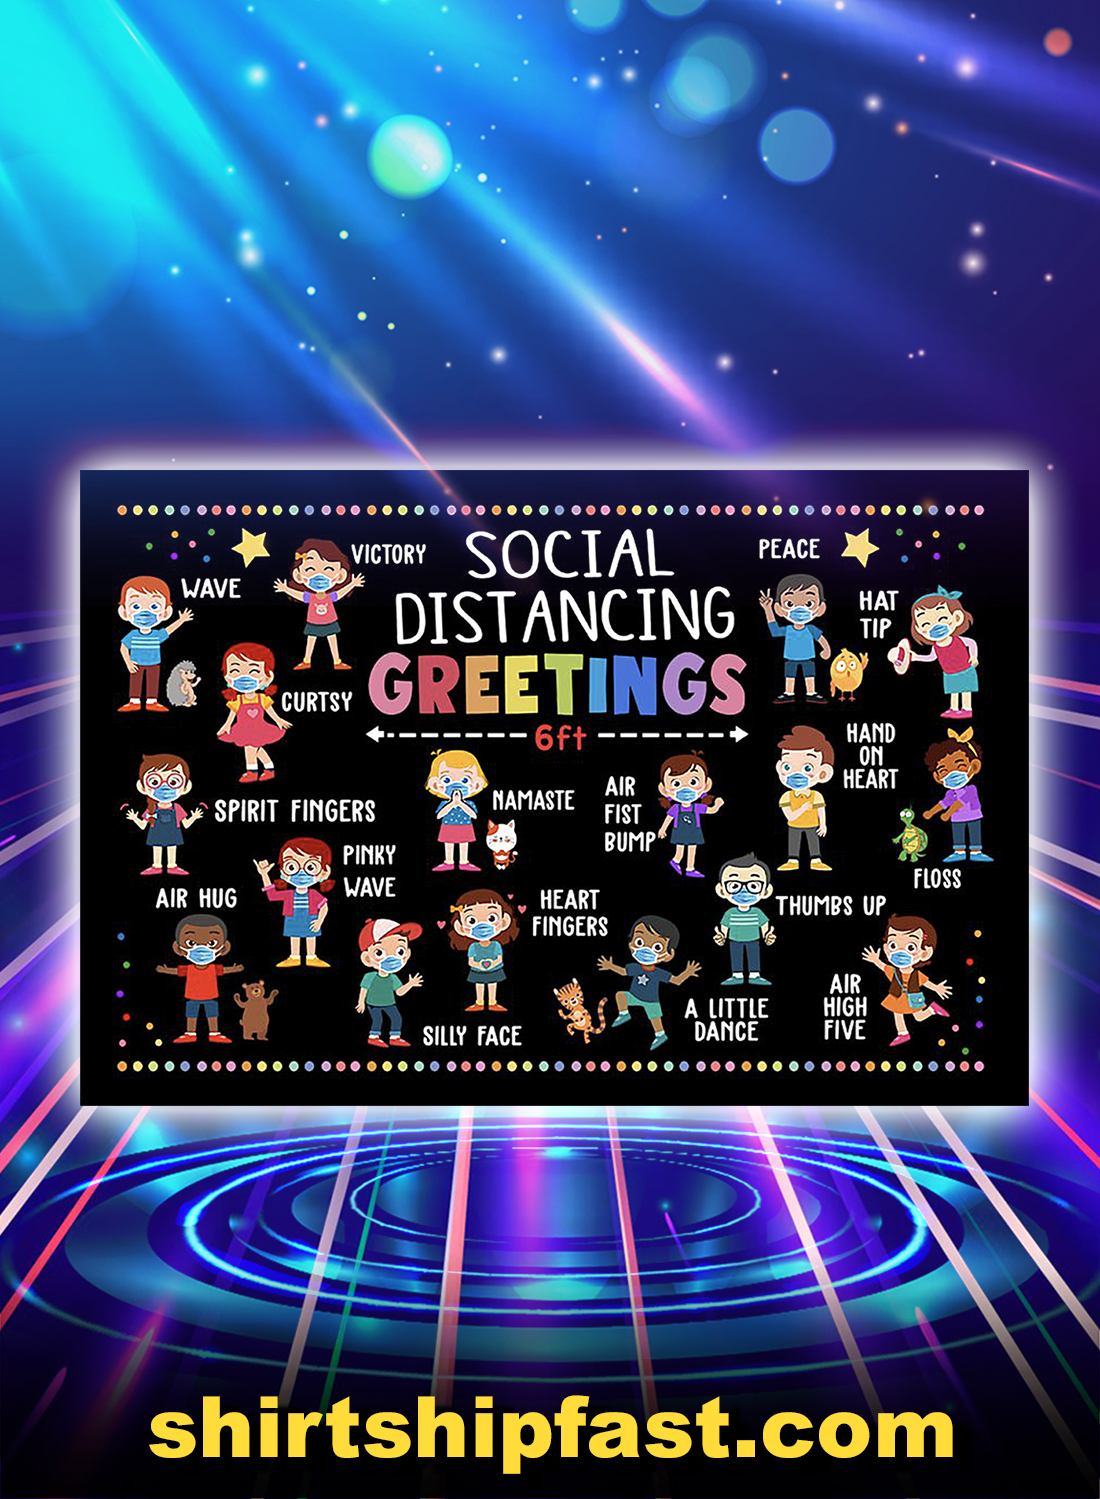 Social distancing greetings 6ft poster - A4